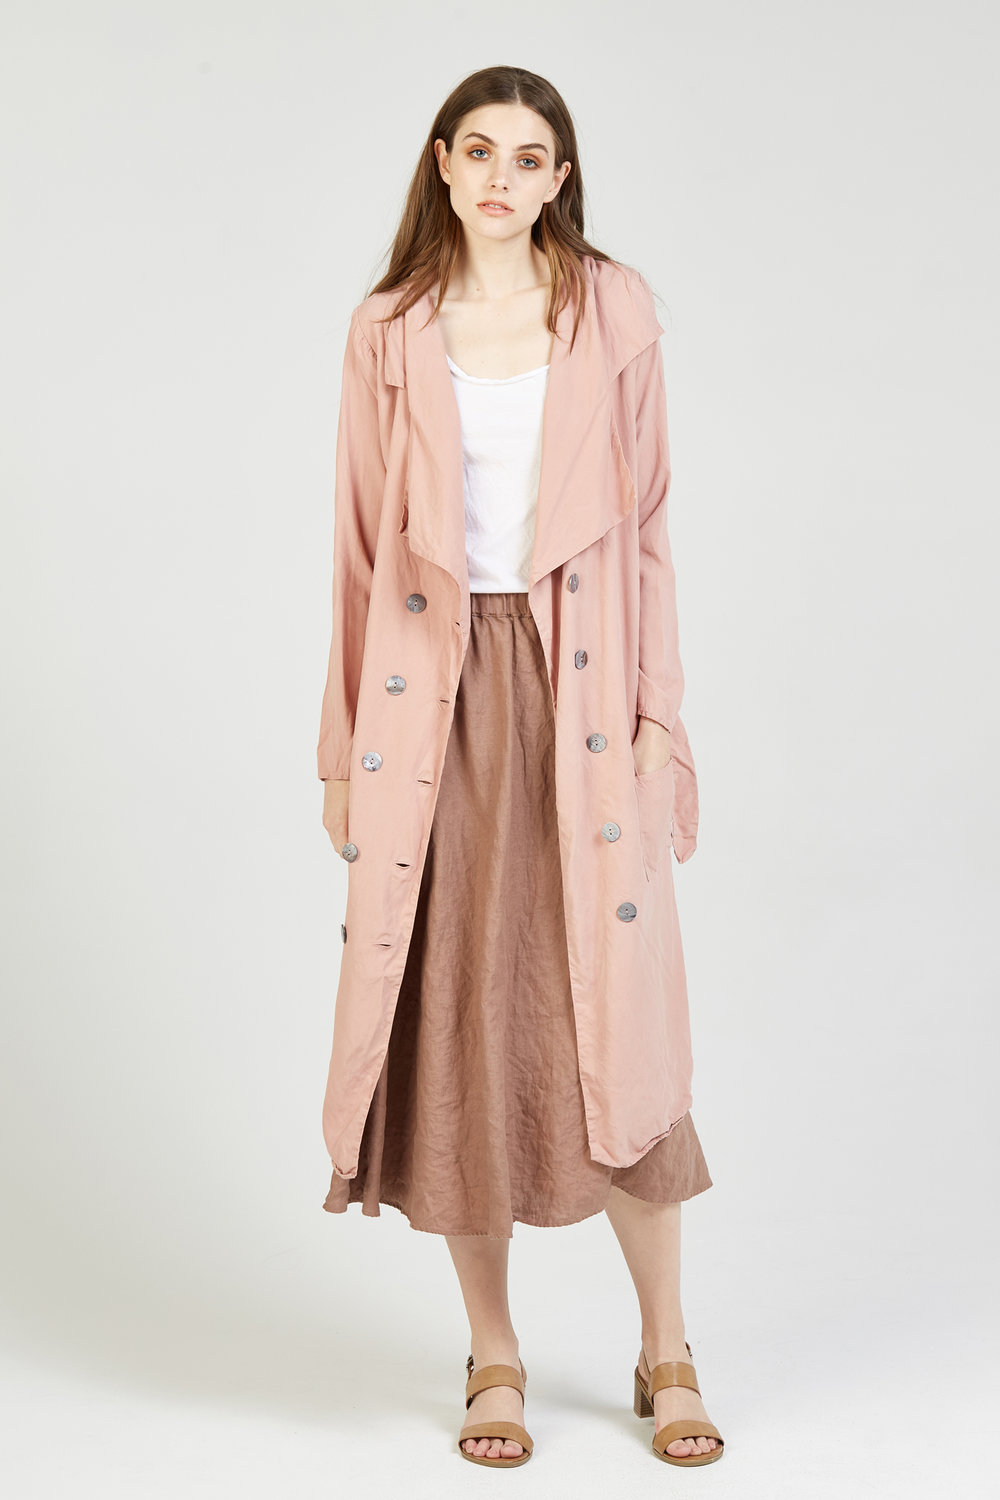 RACER TANK BLANC. LINEN SKIRT FUDGE BROWN. TRENCH ROSEWOOD